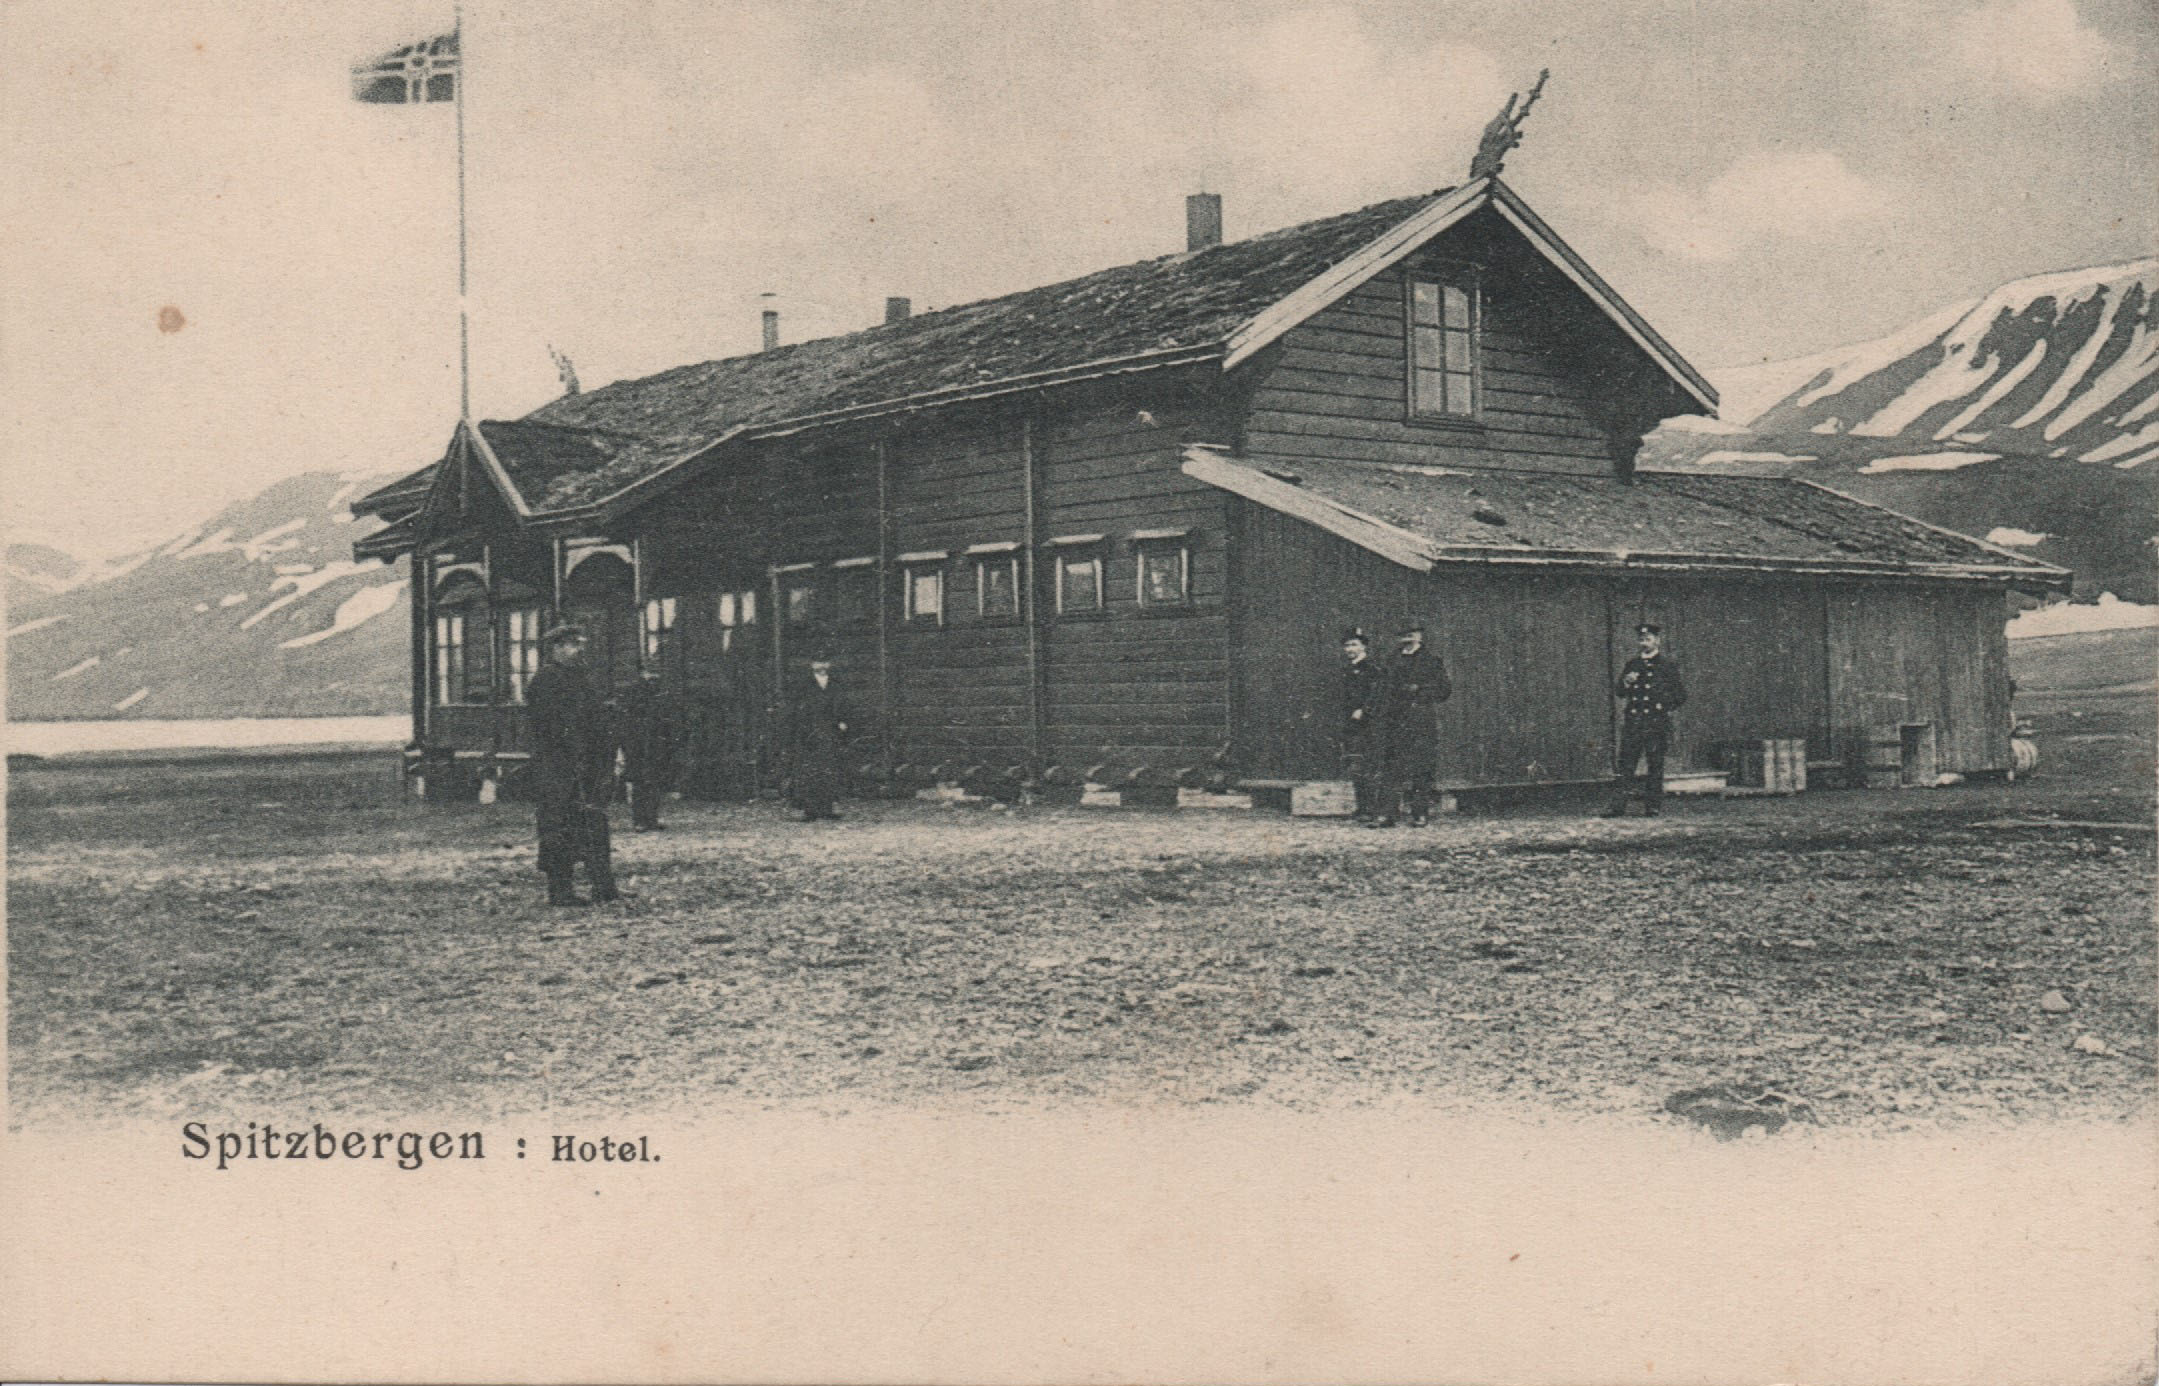 First Hotel and Post Office Spitzbergen 1900